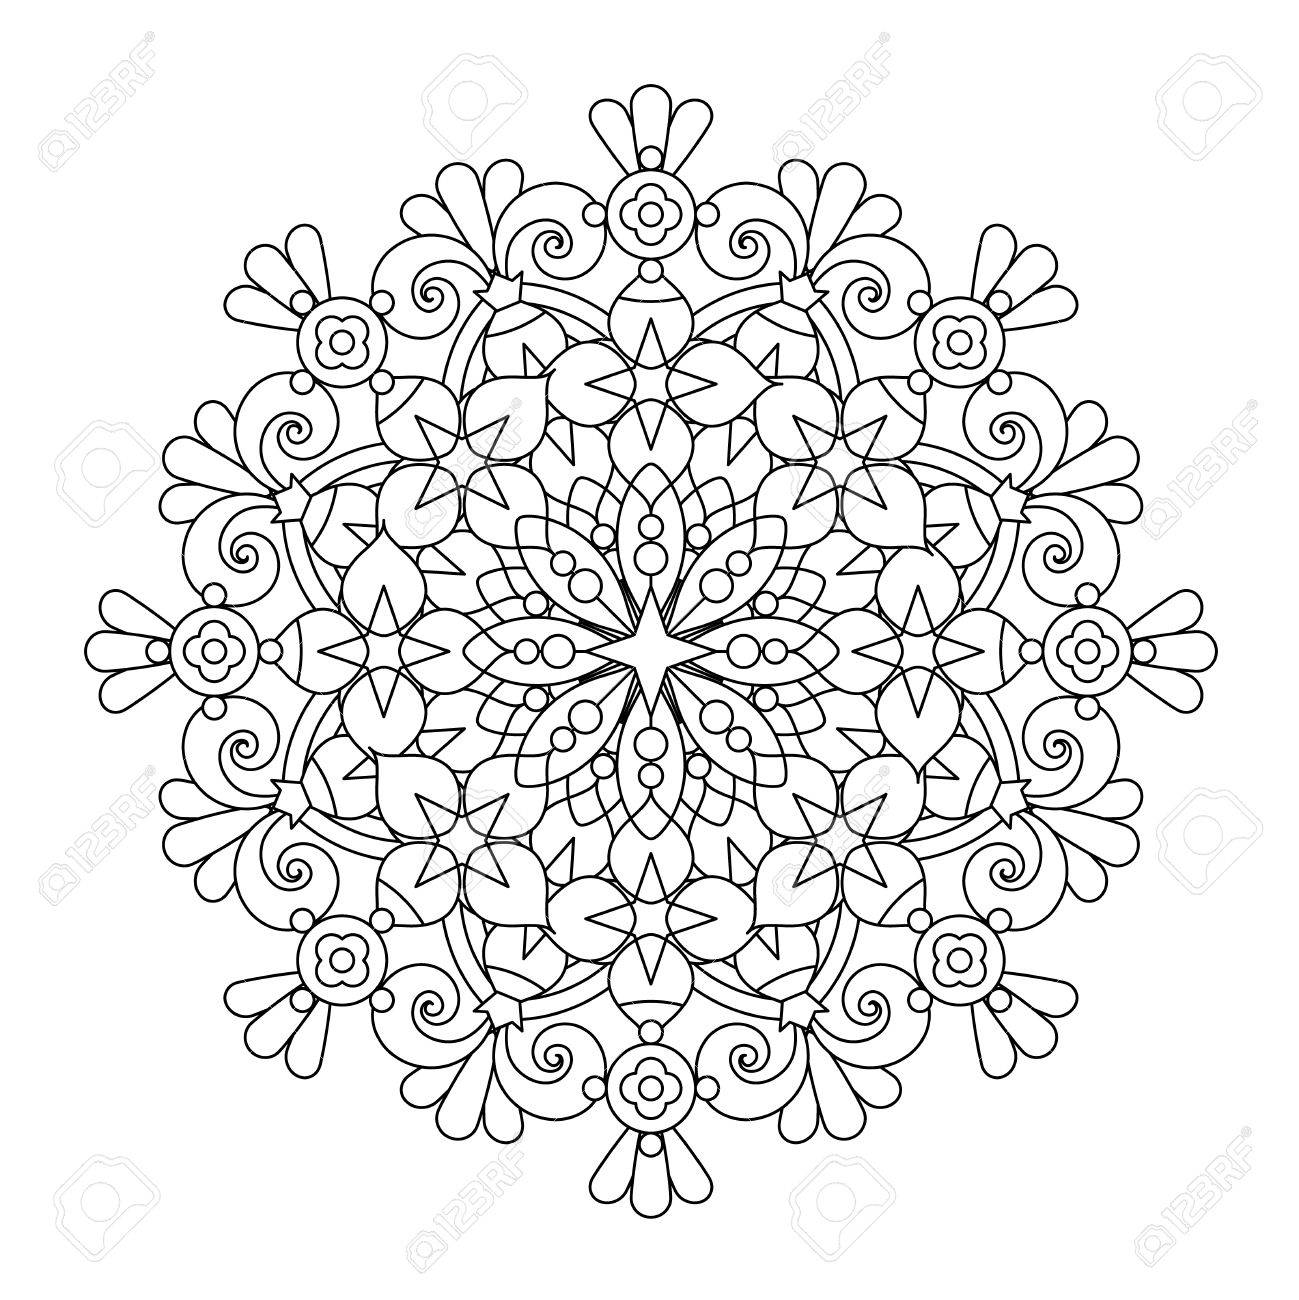 Abstract mandala or whimsical snowflake line art design or coloring..